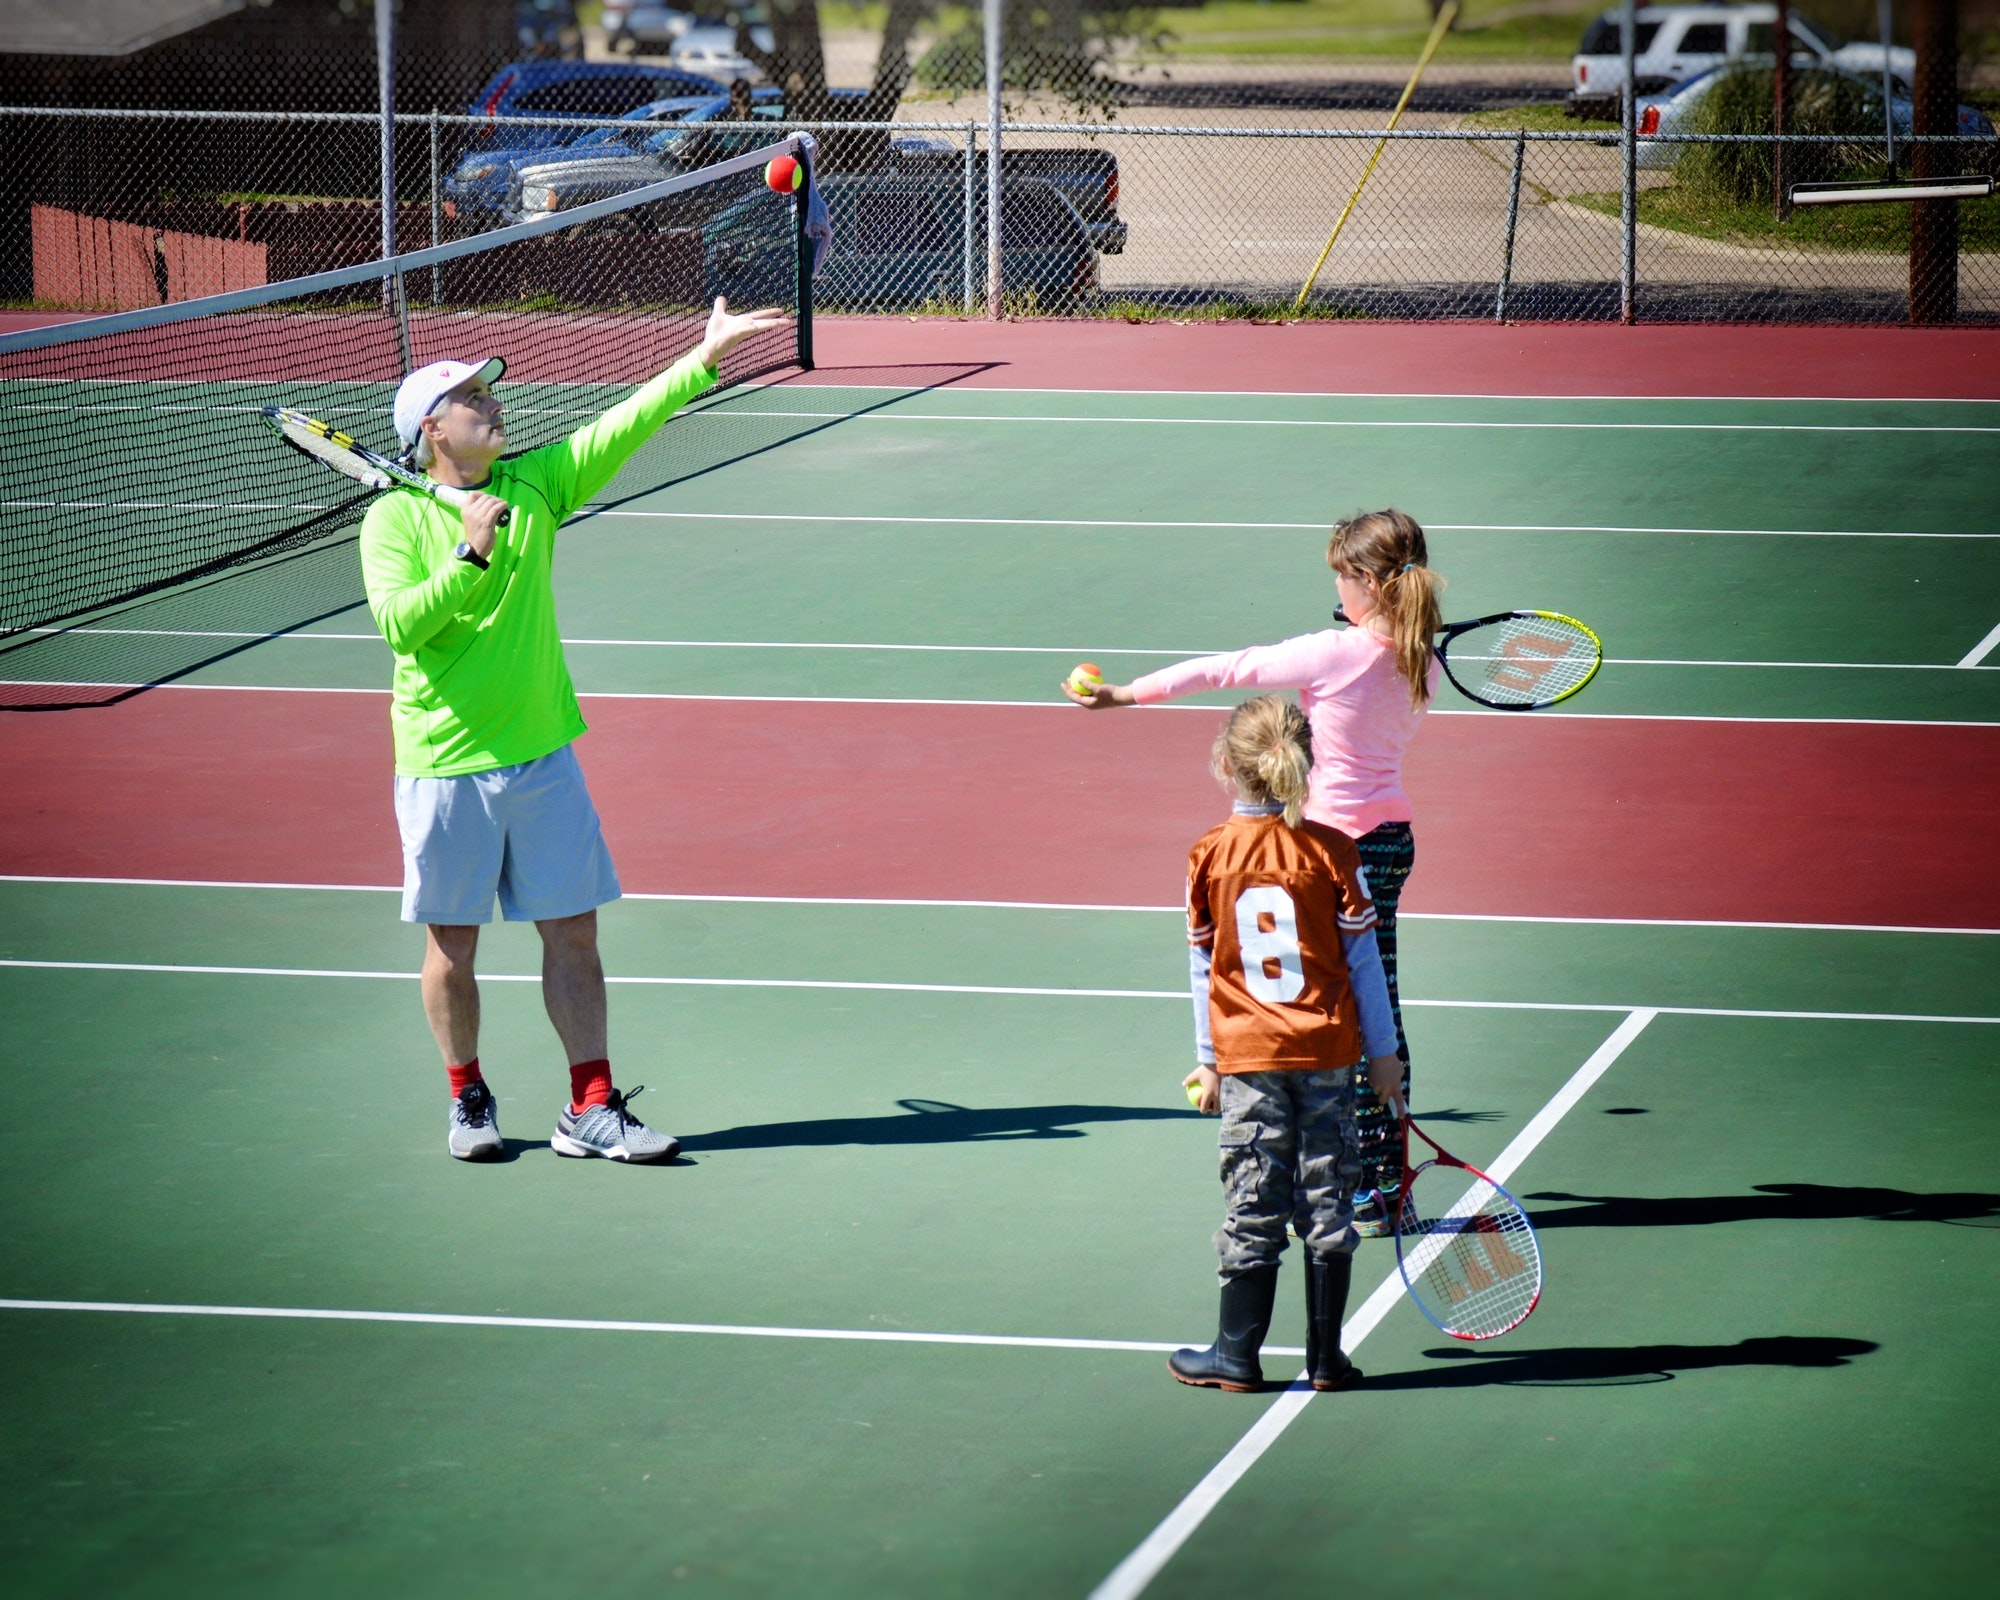 Jeffery H. teaches tennis lessons in Mineola , TX